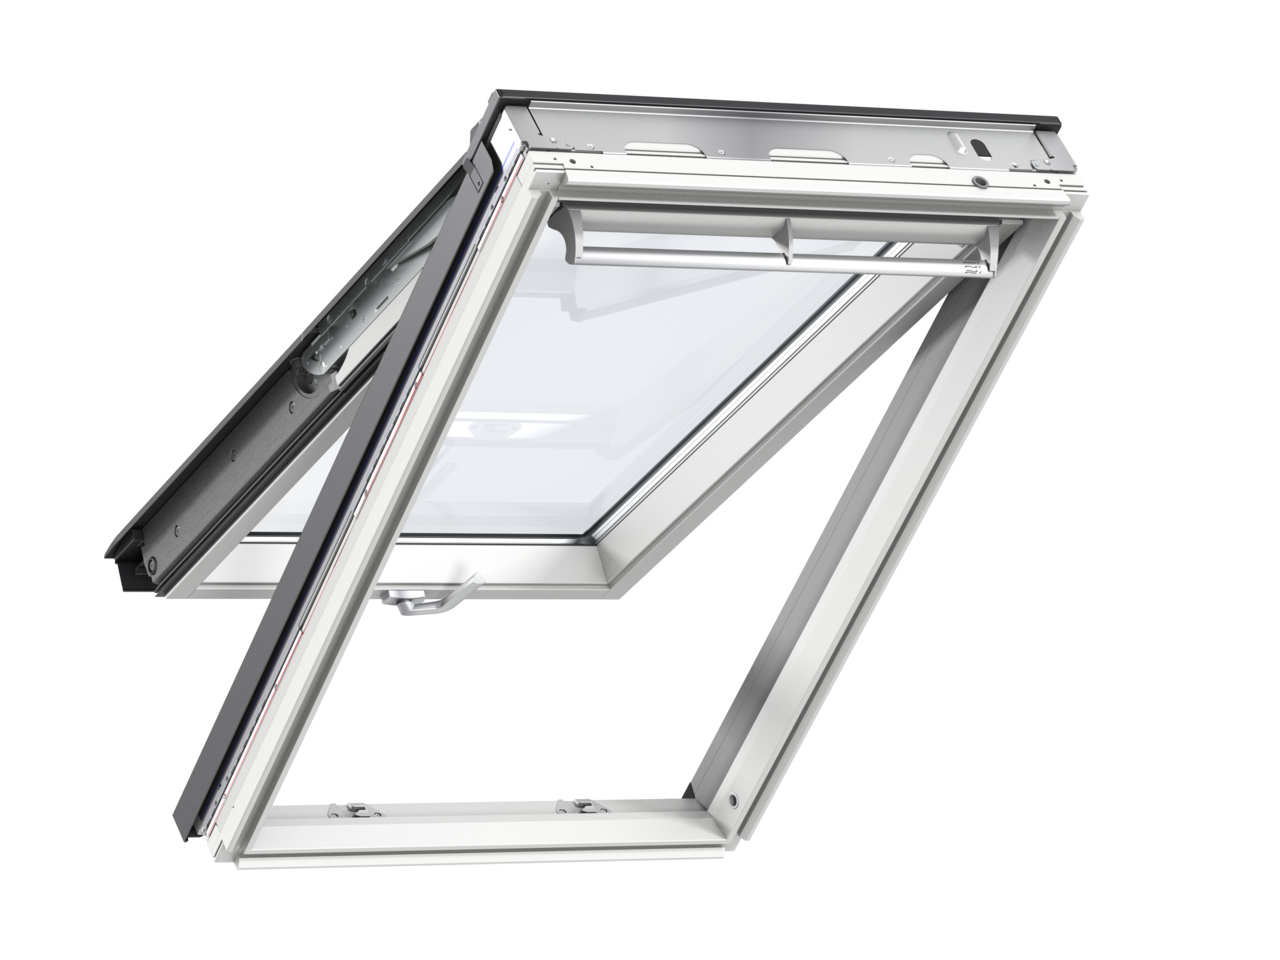 Velux GPL PK10 940 x 1600mm Top Hung 66Pane Roof Window - White Painted